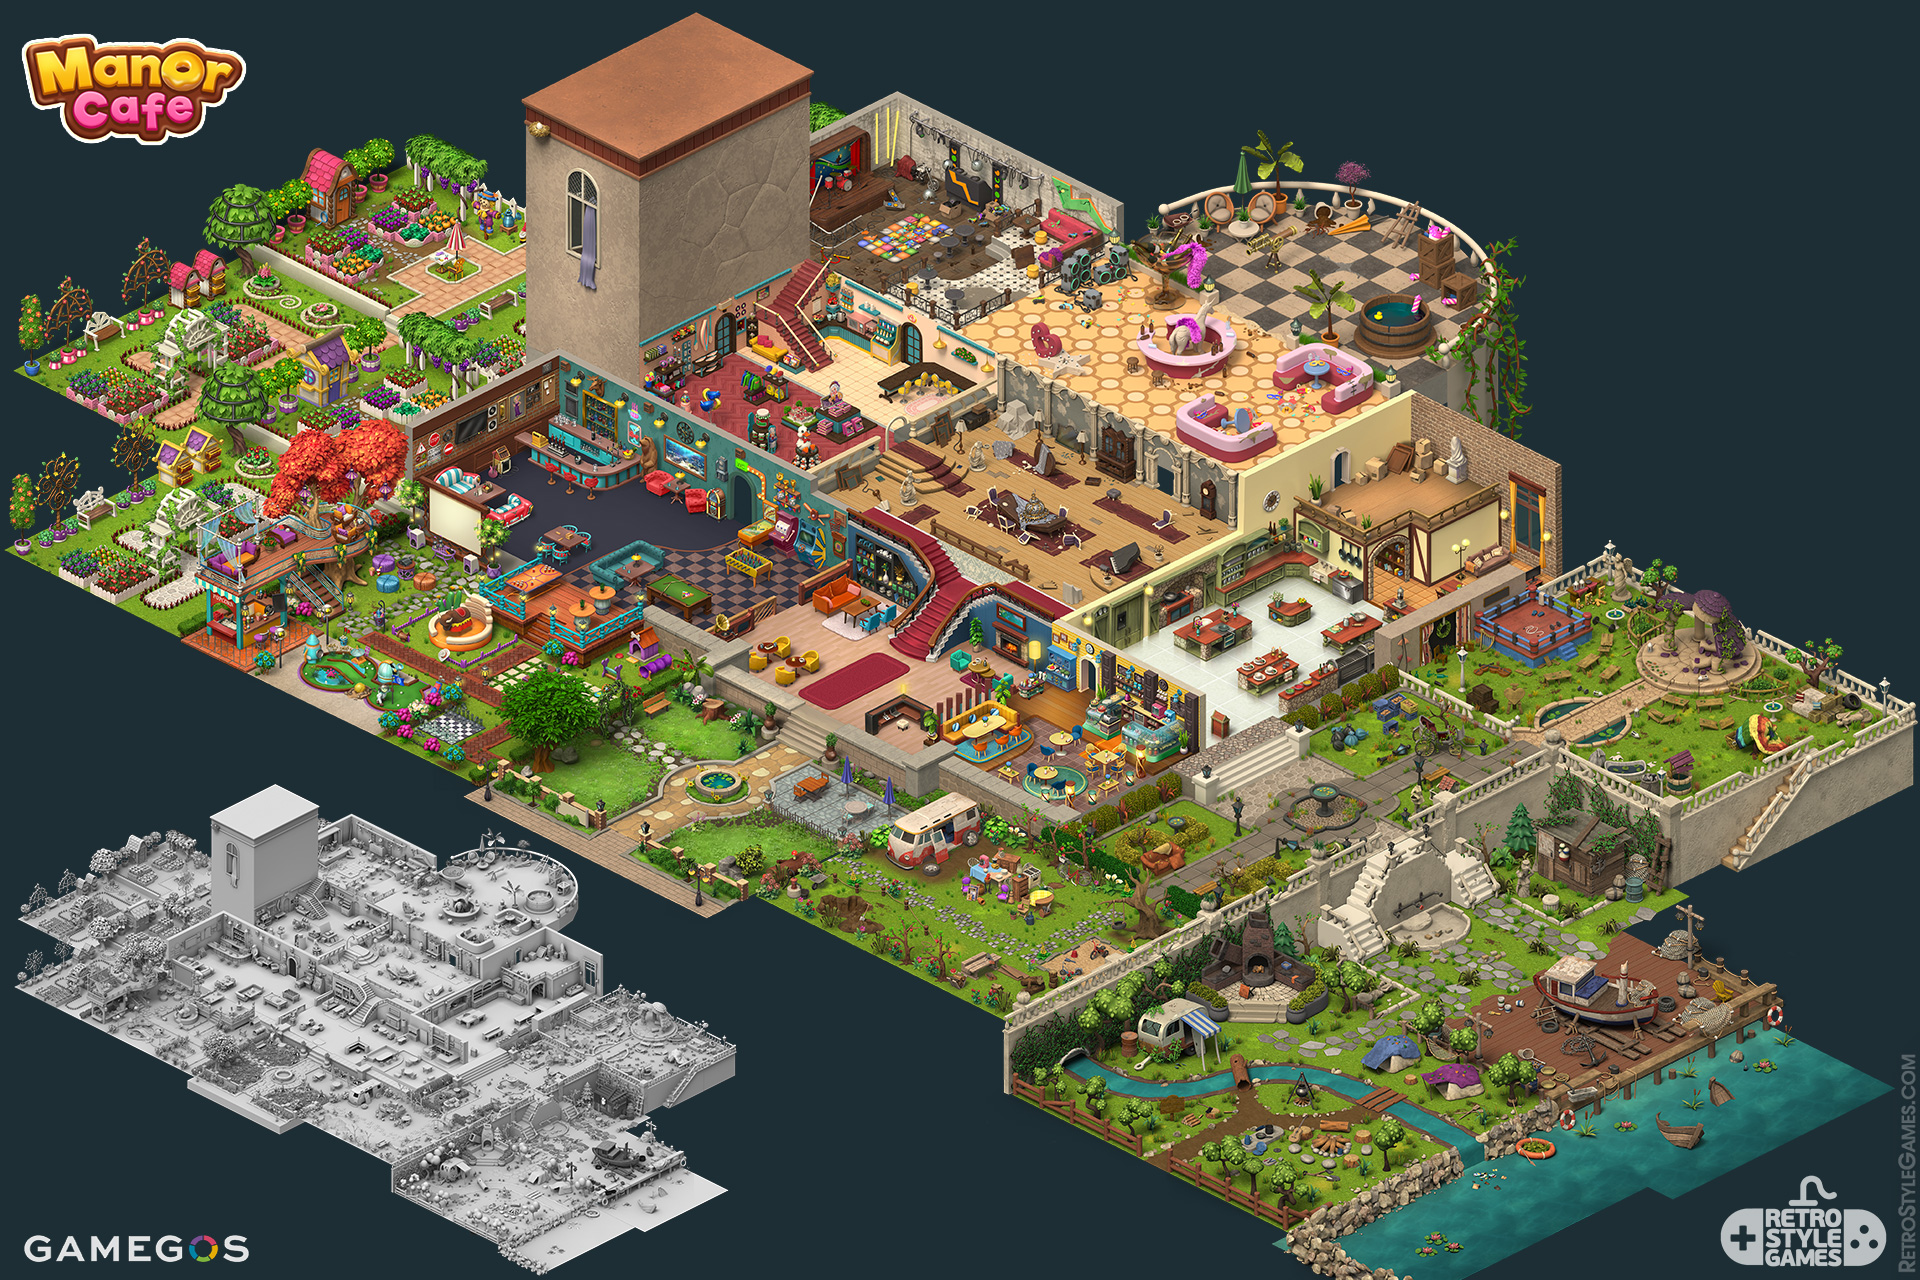 Isometric Mansion ISO Game Interior Environment Gardenscapes Sprites